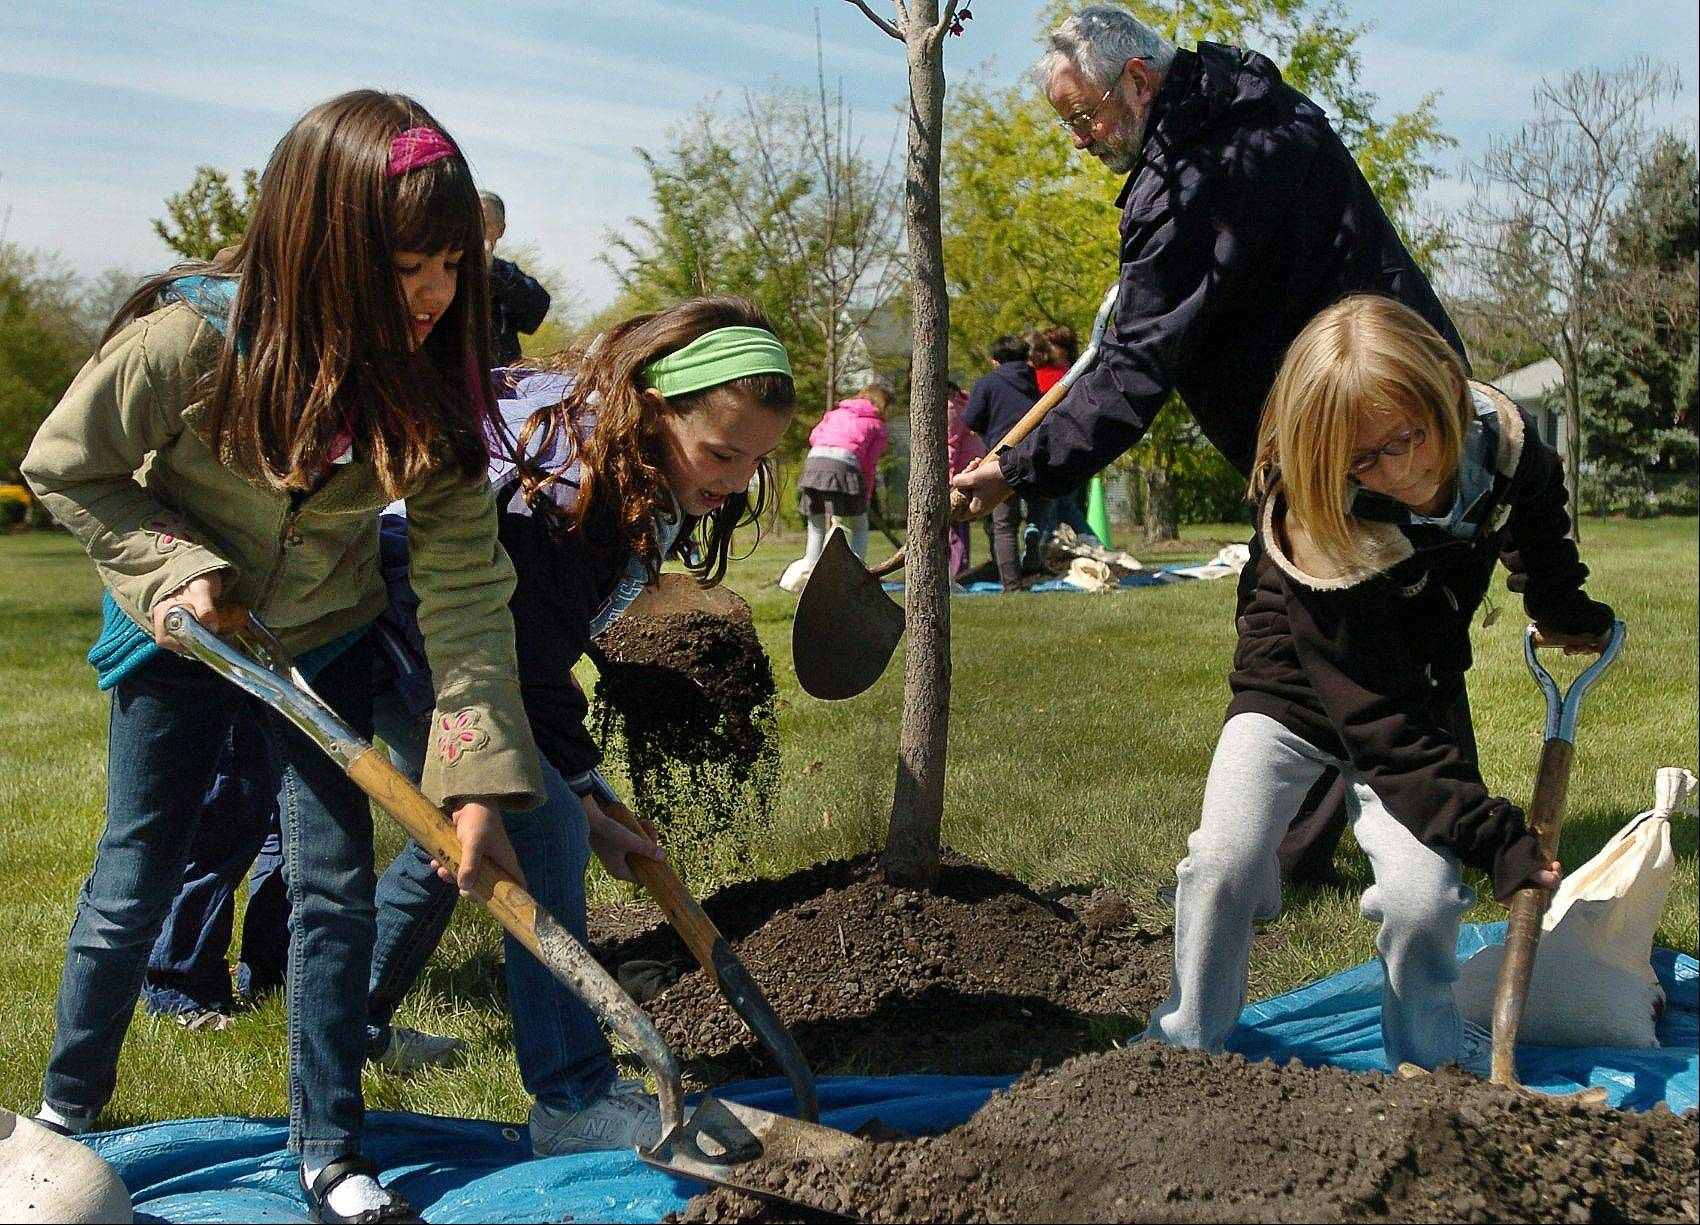 Frank C. Whiteley School third-graders, from left, Michaela Vall, Ashley Scesniak and Kailey Mleko help Mayor Bill McLeod at Arbor Day Park in Hoffman Estates.